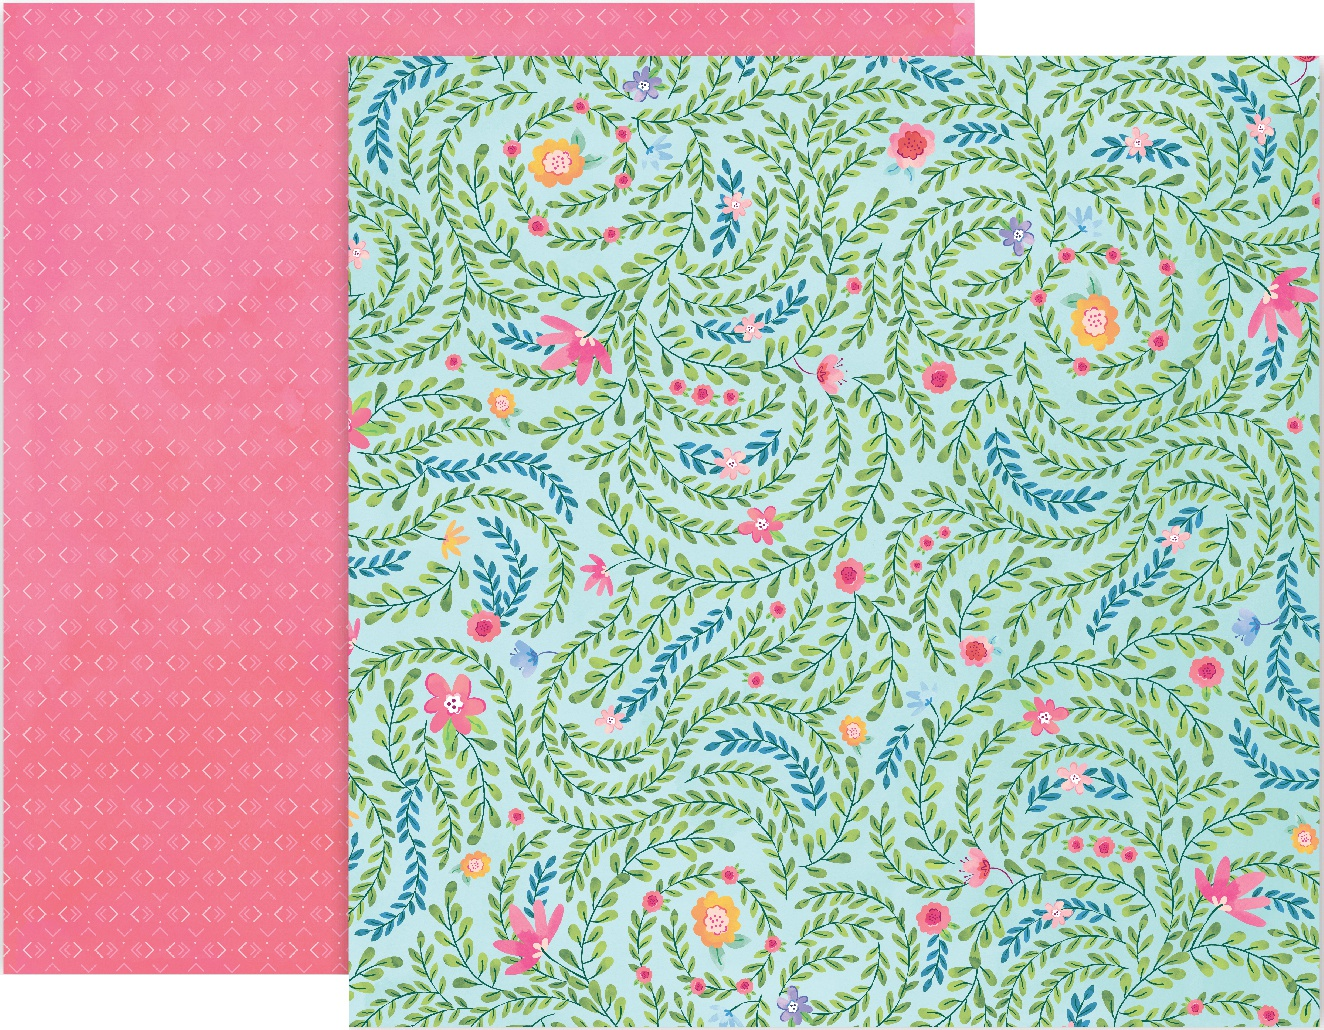 Paige Evans Bloom Street Double-Sided Cardstock 12X12-#5